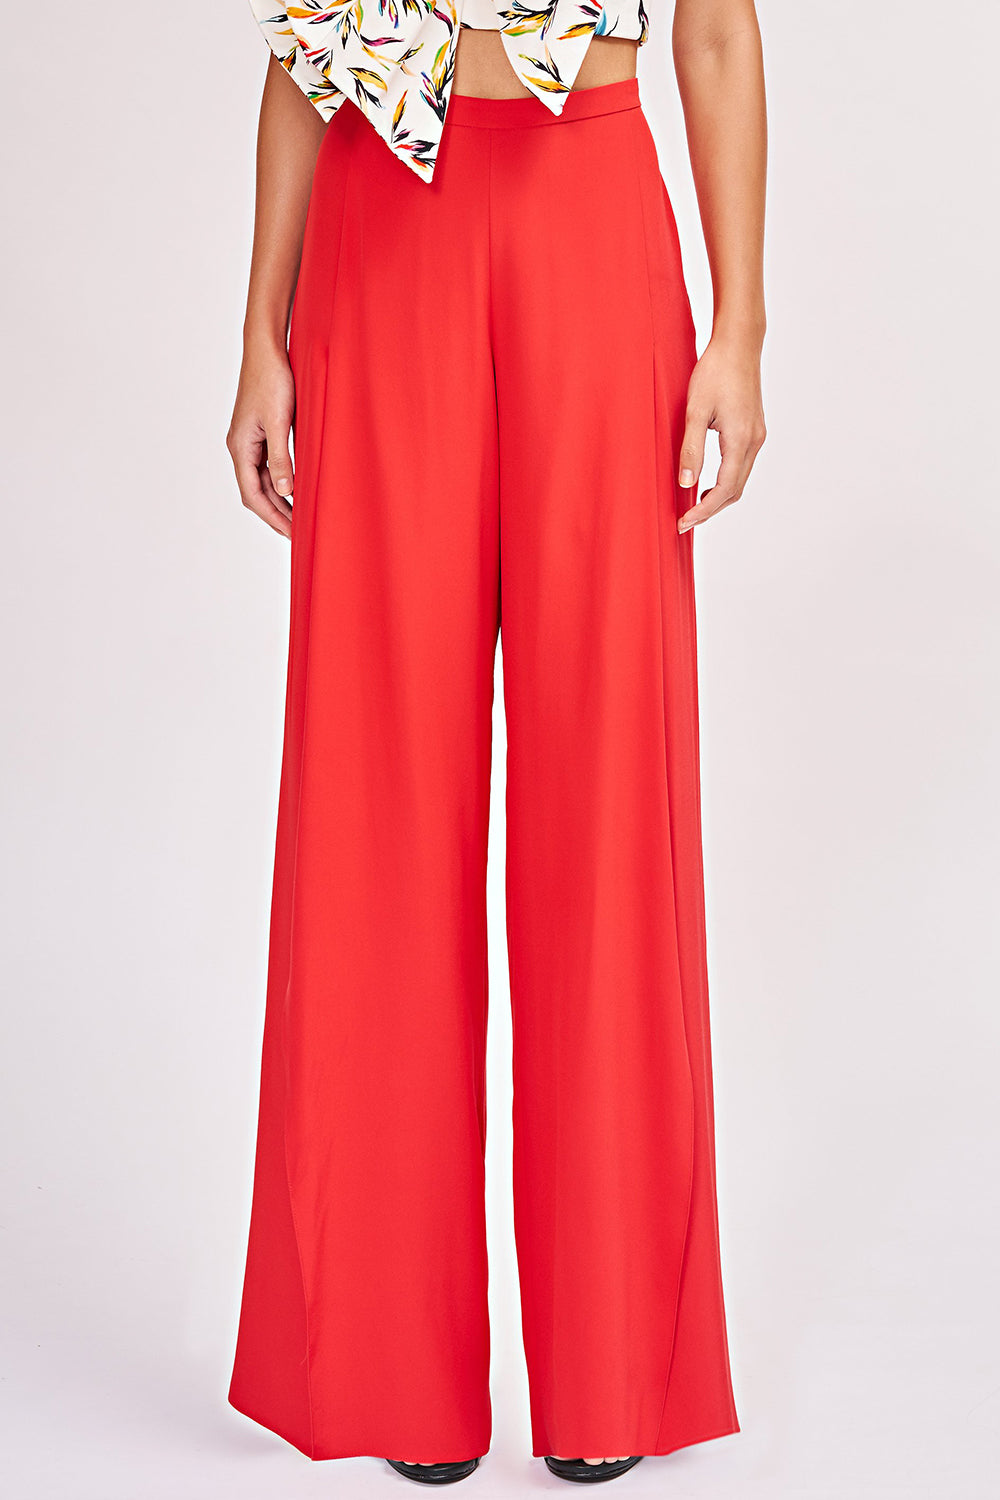 High-Waisted Ines Pant in Fiery Red